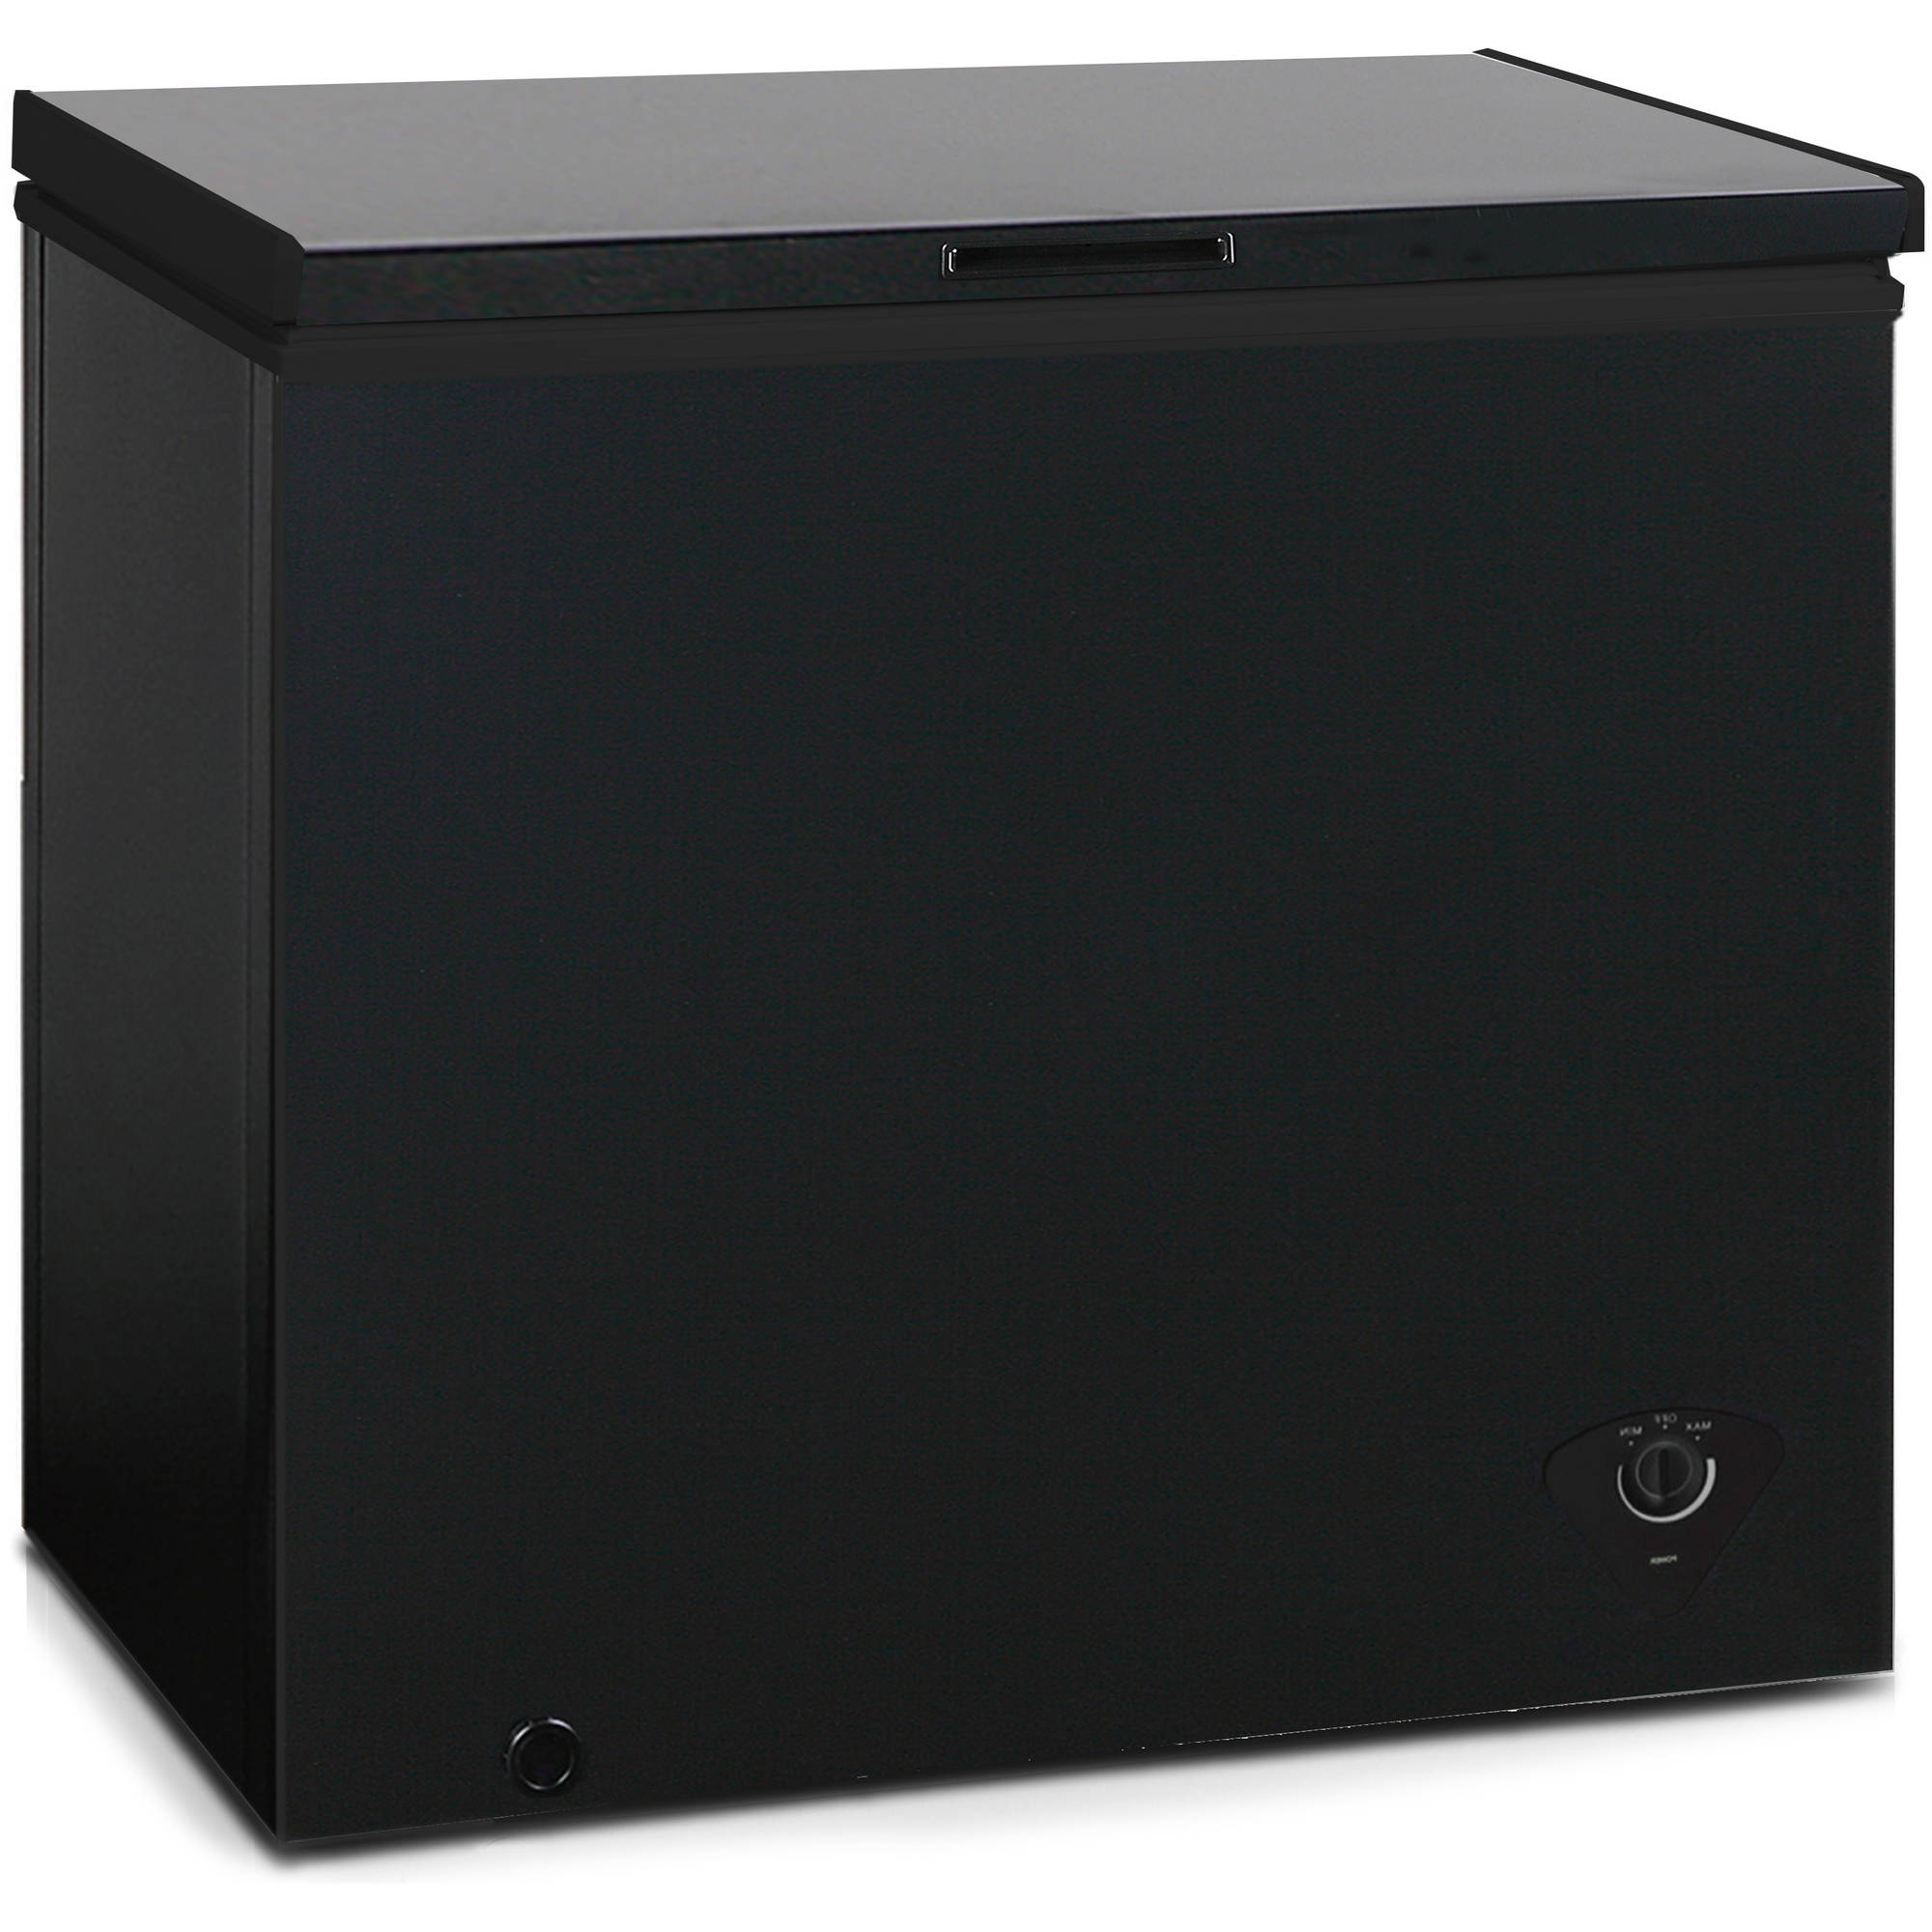 Arctic King 7 Cu Ft Chest Freezer Black Walmart Com